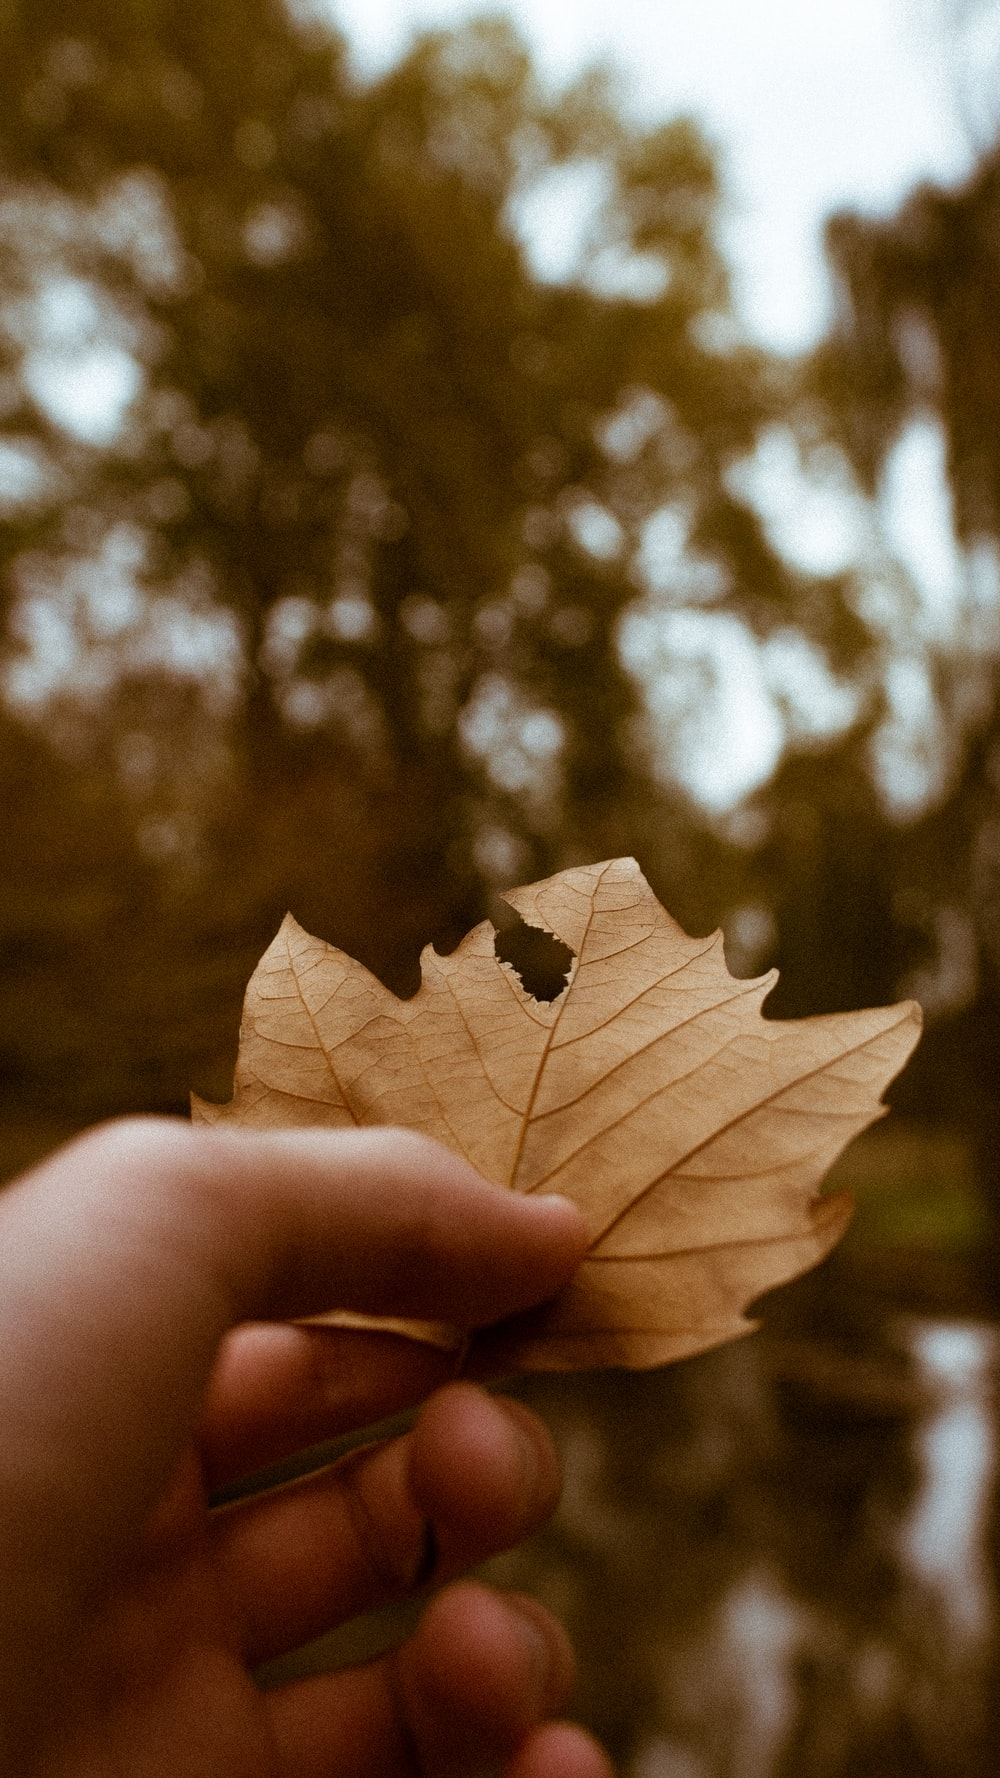 persons hand holding dried leaf close-up photography